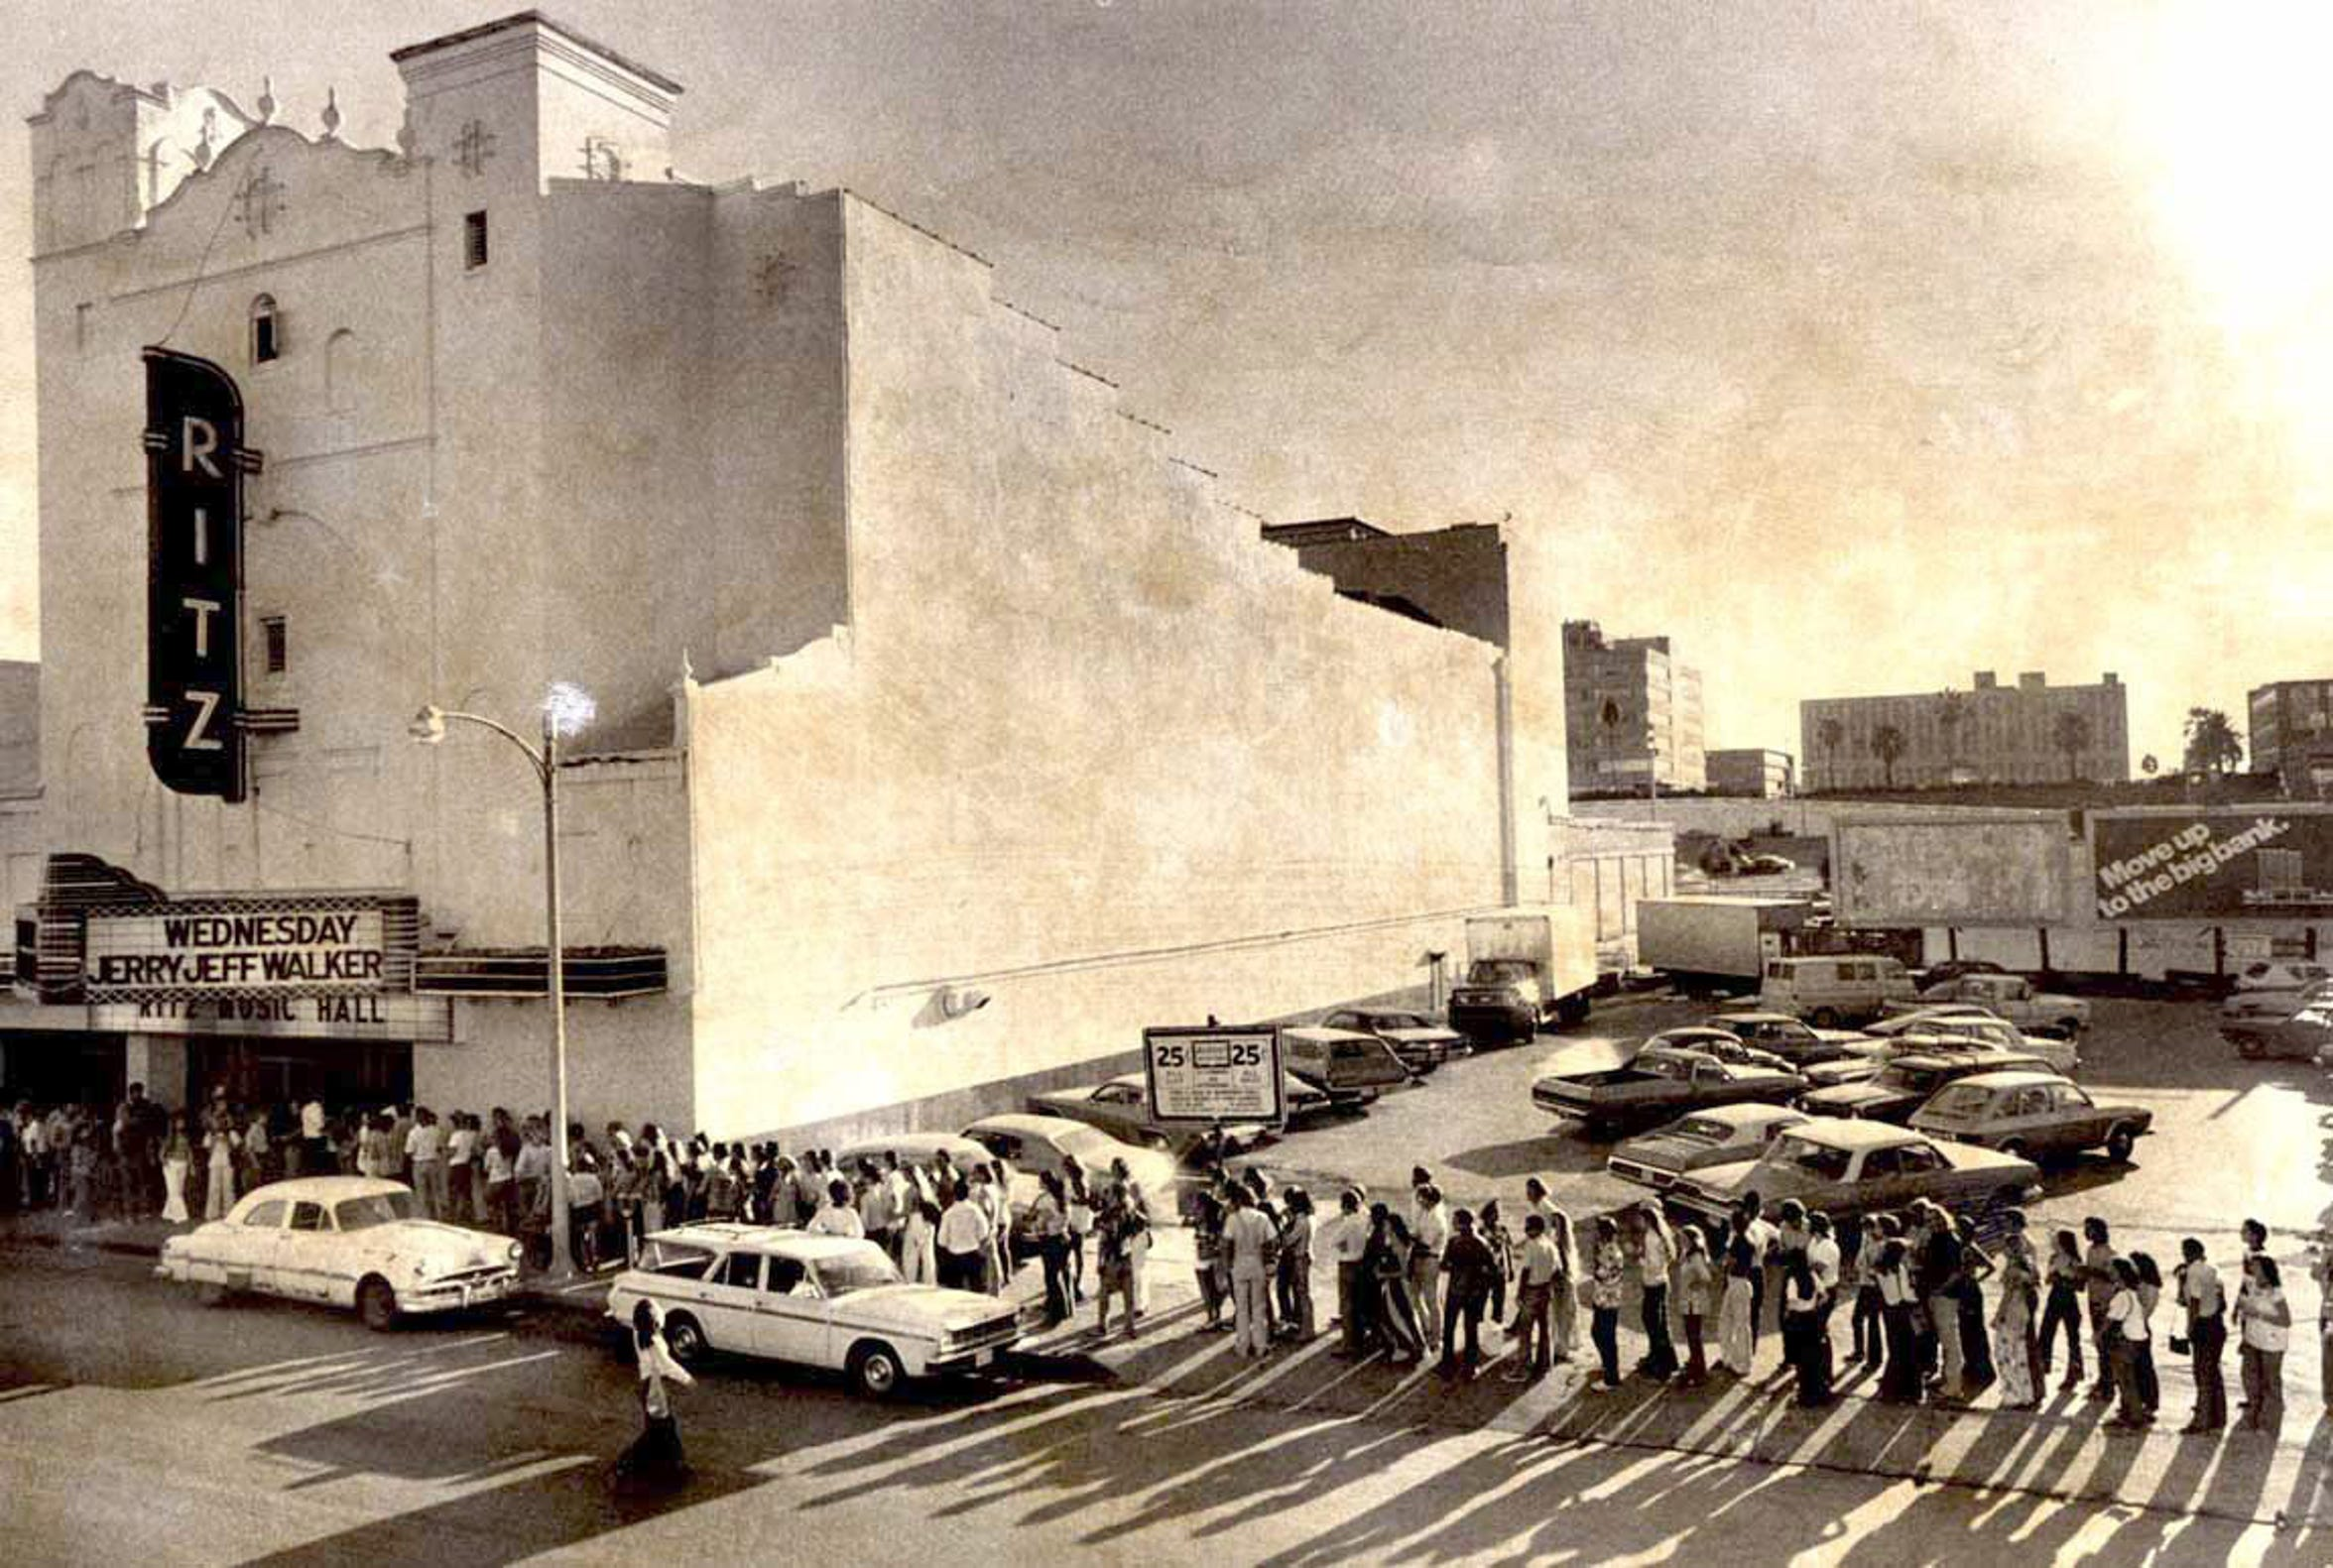 Crowds line up outside the Ritz Music Hall to hear Jerry Jeff Walker on opening night, July 25, 1974 in downtown Corpus Christi.